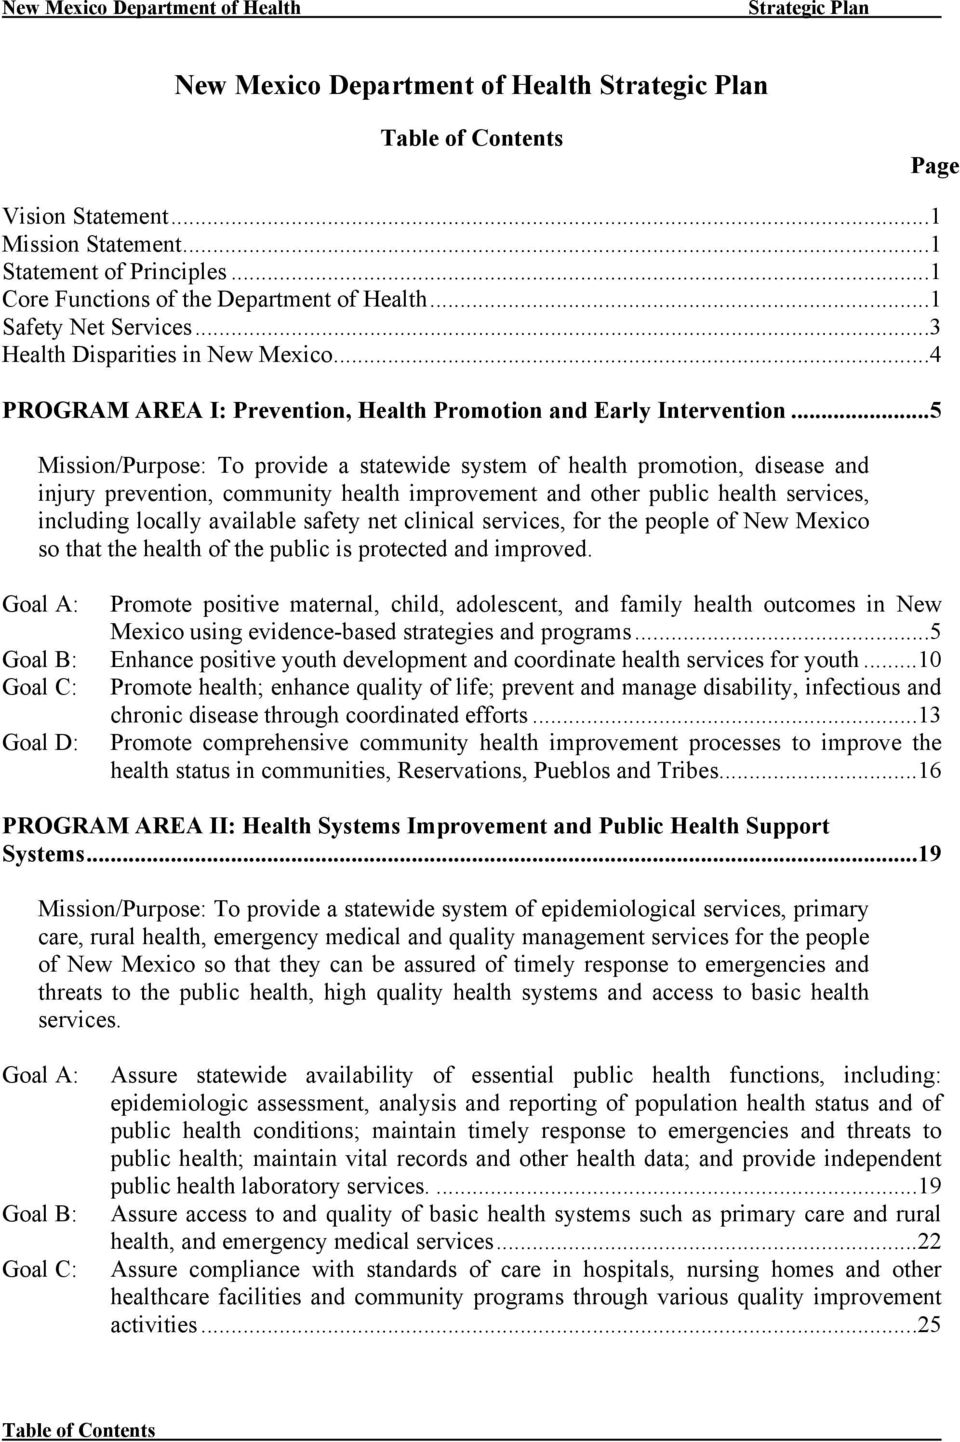 ..5 Mission/Purpose: To provide a statewide system of health promotion, disease and injury prevention, community health improvement and other public health services, including locally available